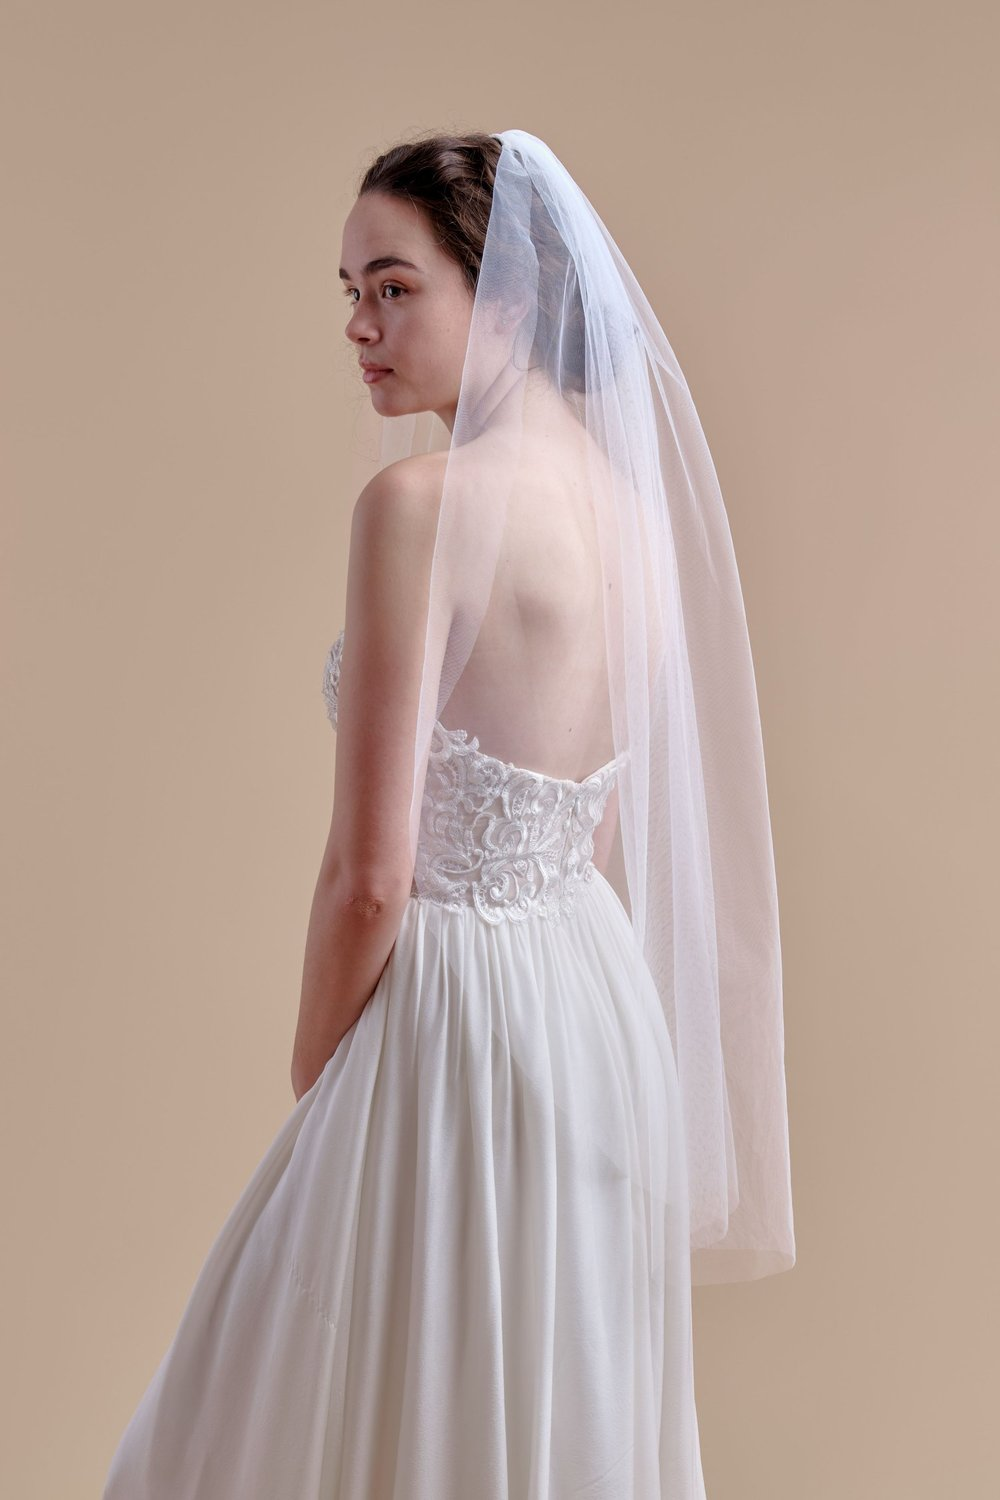 anomalie, basic tulle fingertip veil, affordable veils.jpg